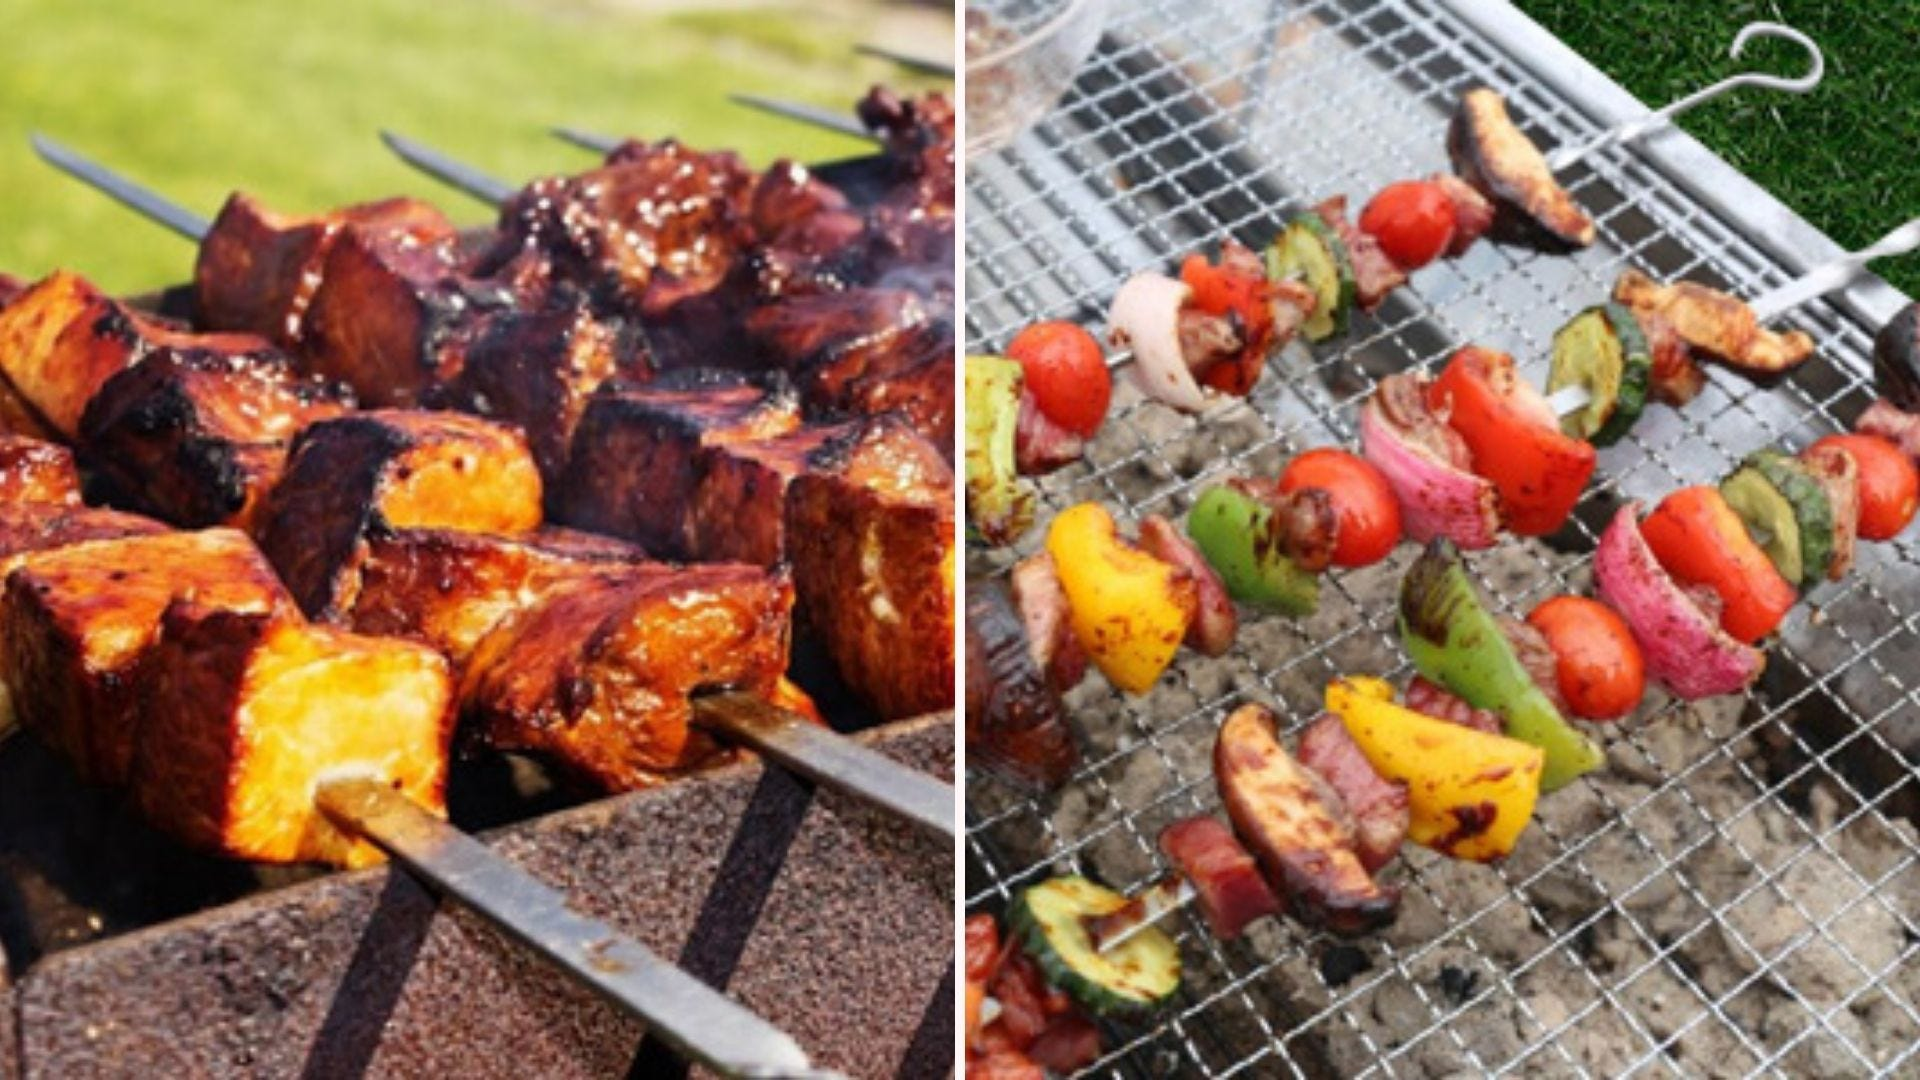 Two side by side images displaying Lanney stainless steel kabob skewers.